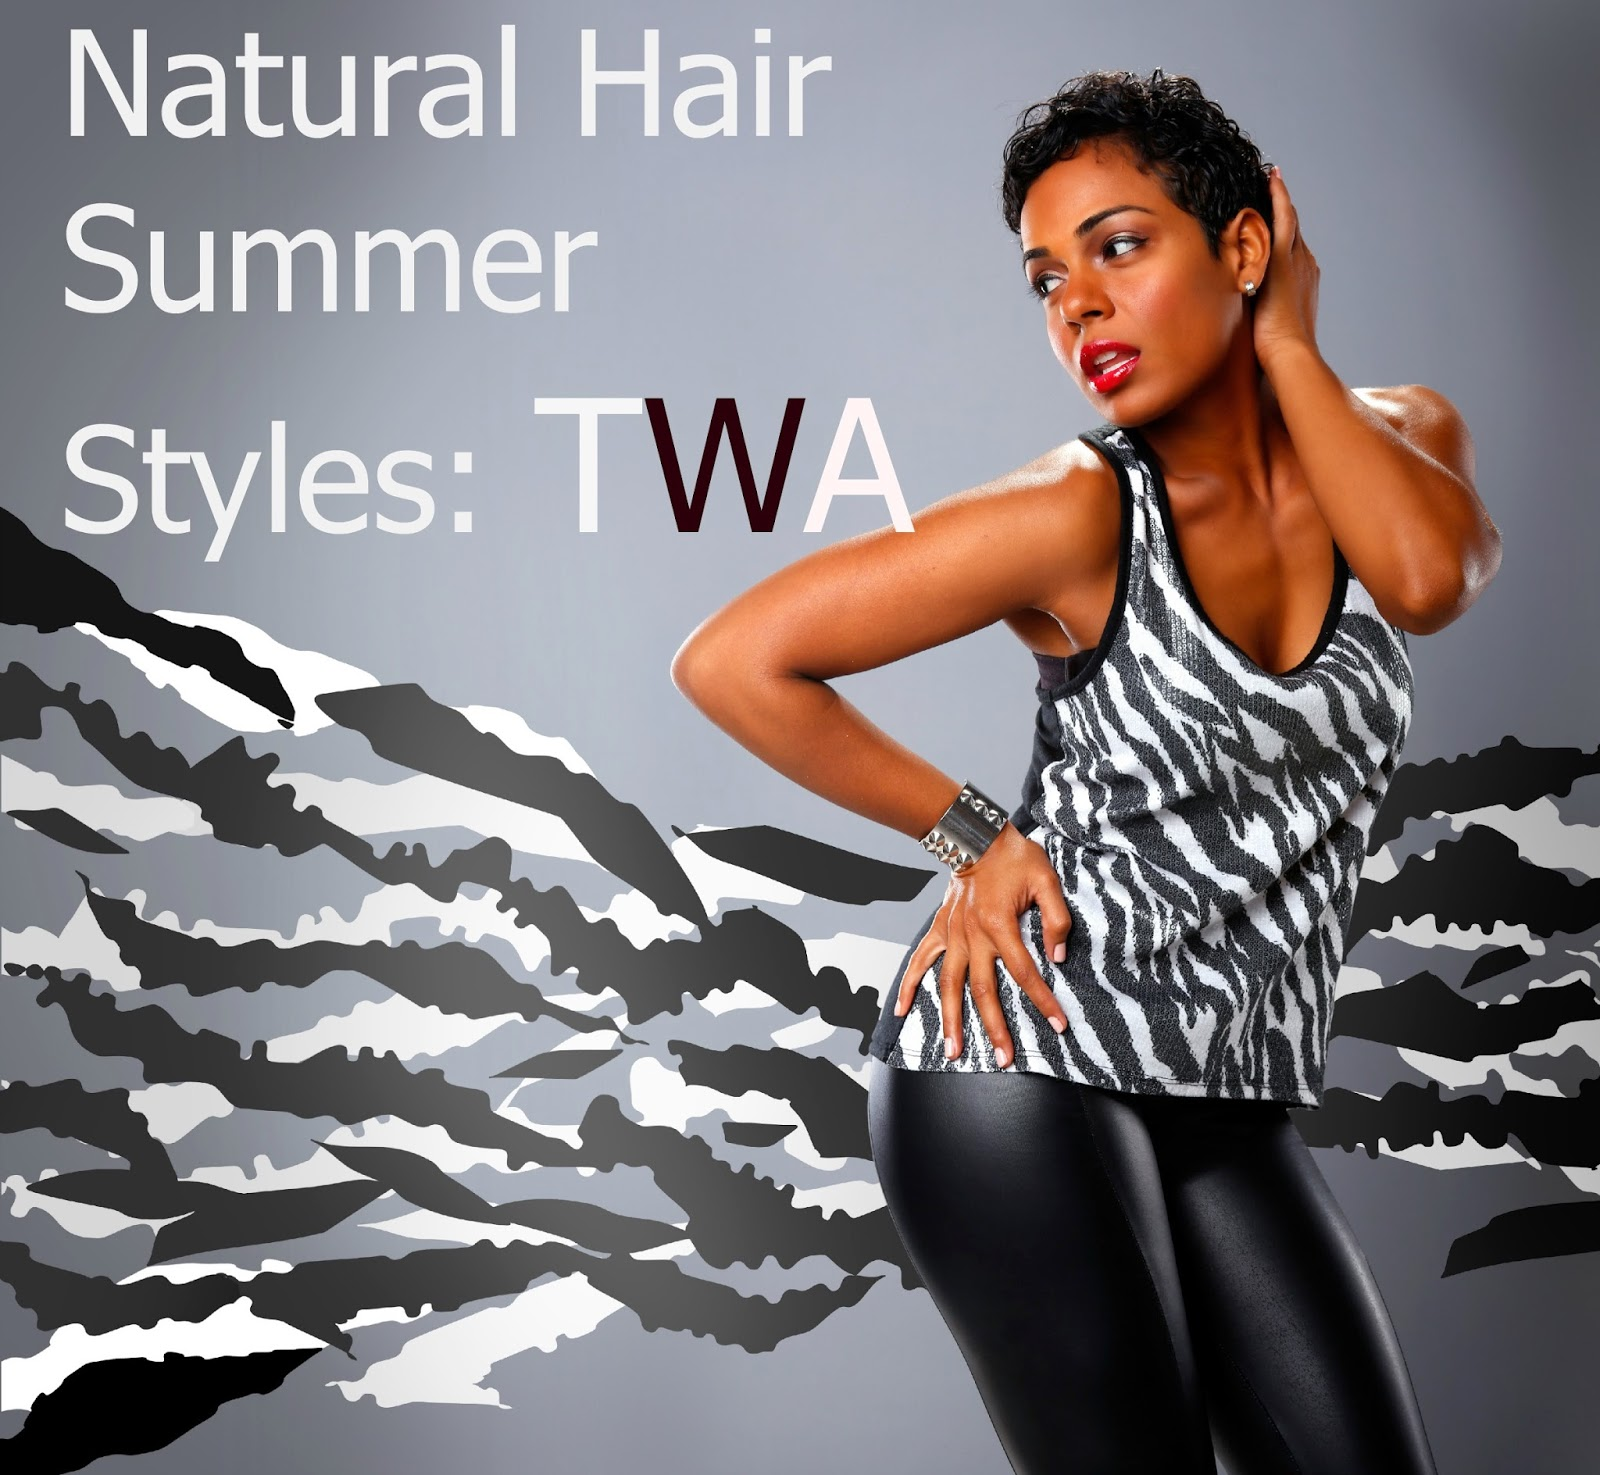 TWA or teeny weeny Afro is not just for those starting out going natural. This sexy look is perfect for summer and will be hot this year!